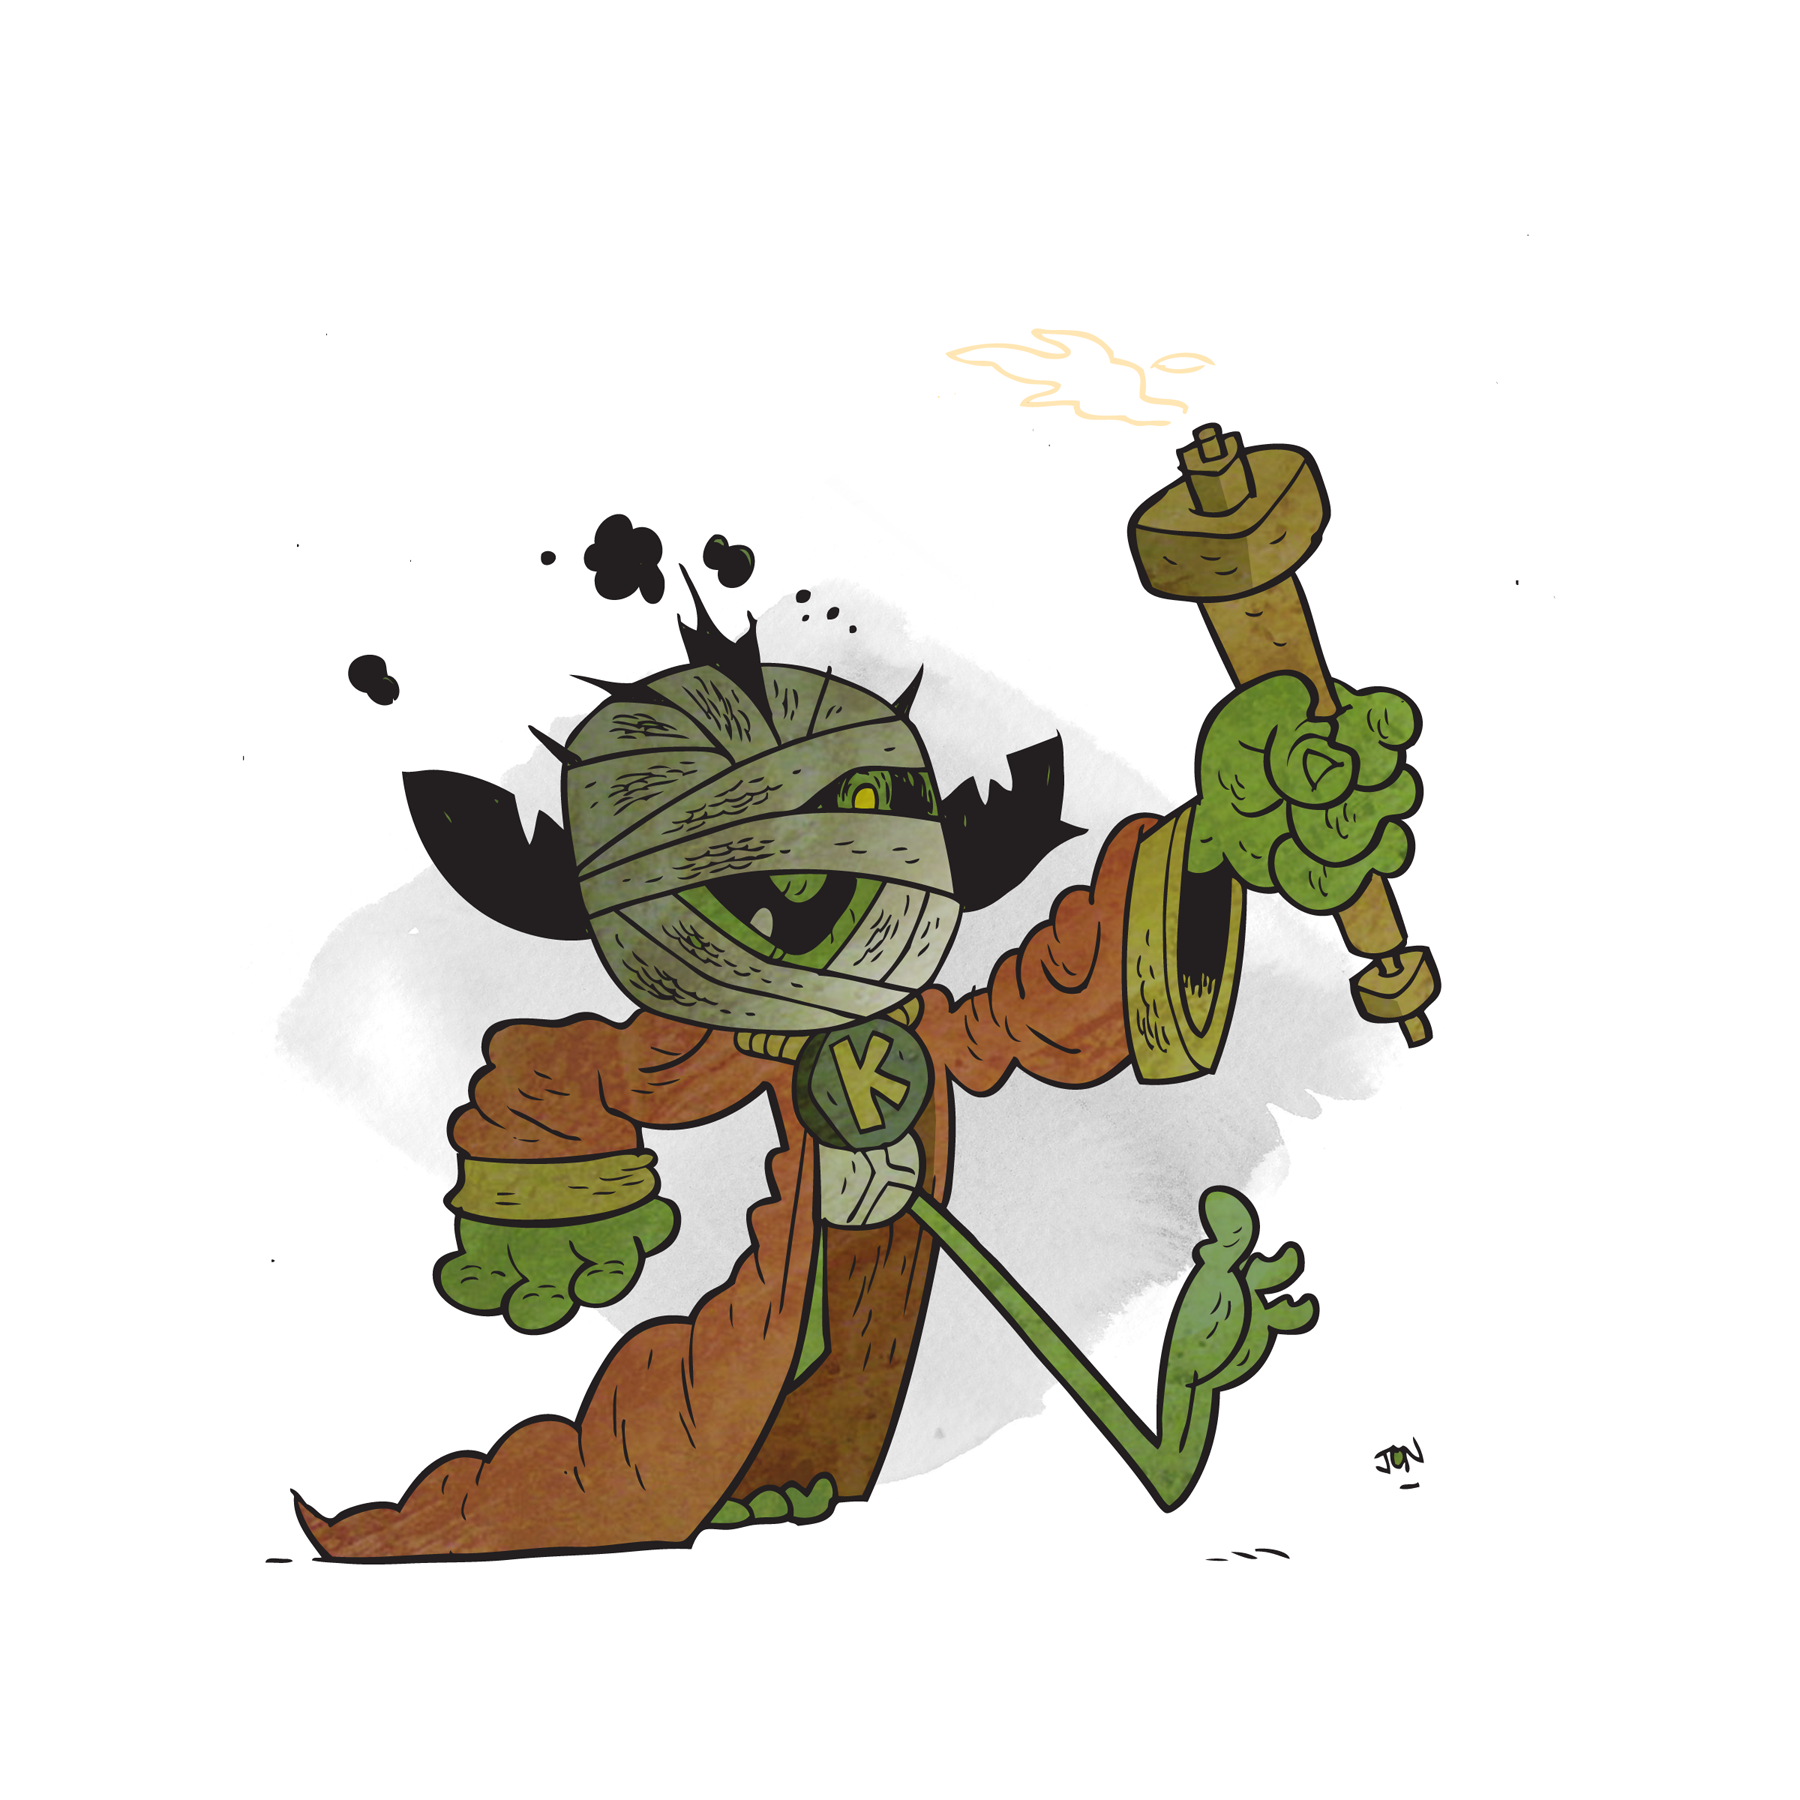 A proud bearer of the torch of goblin liberty.